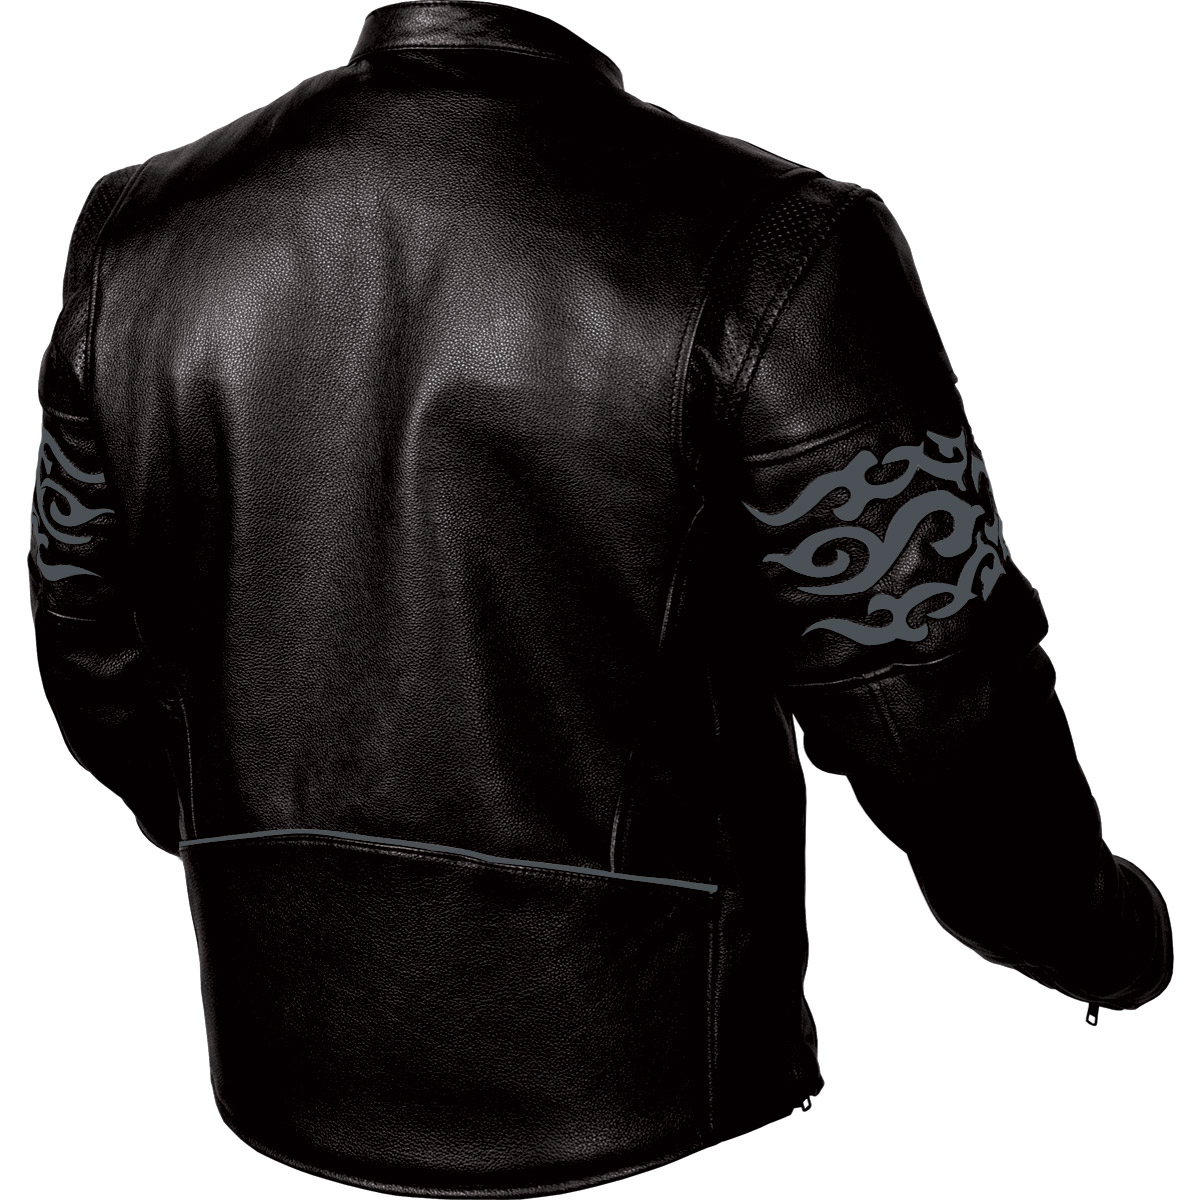 First Manufacturing Co. Tribal Reflective Leather Jacket